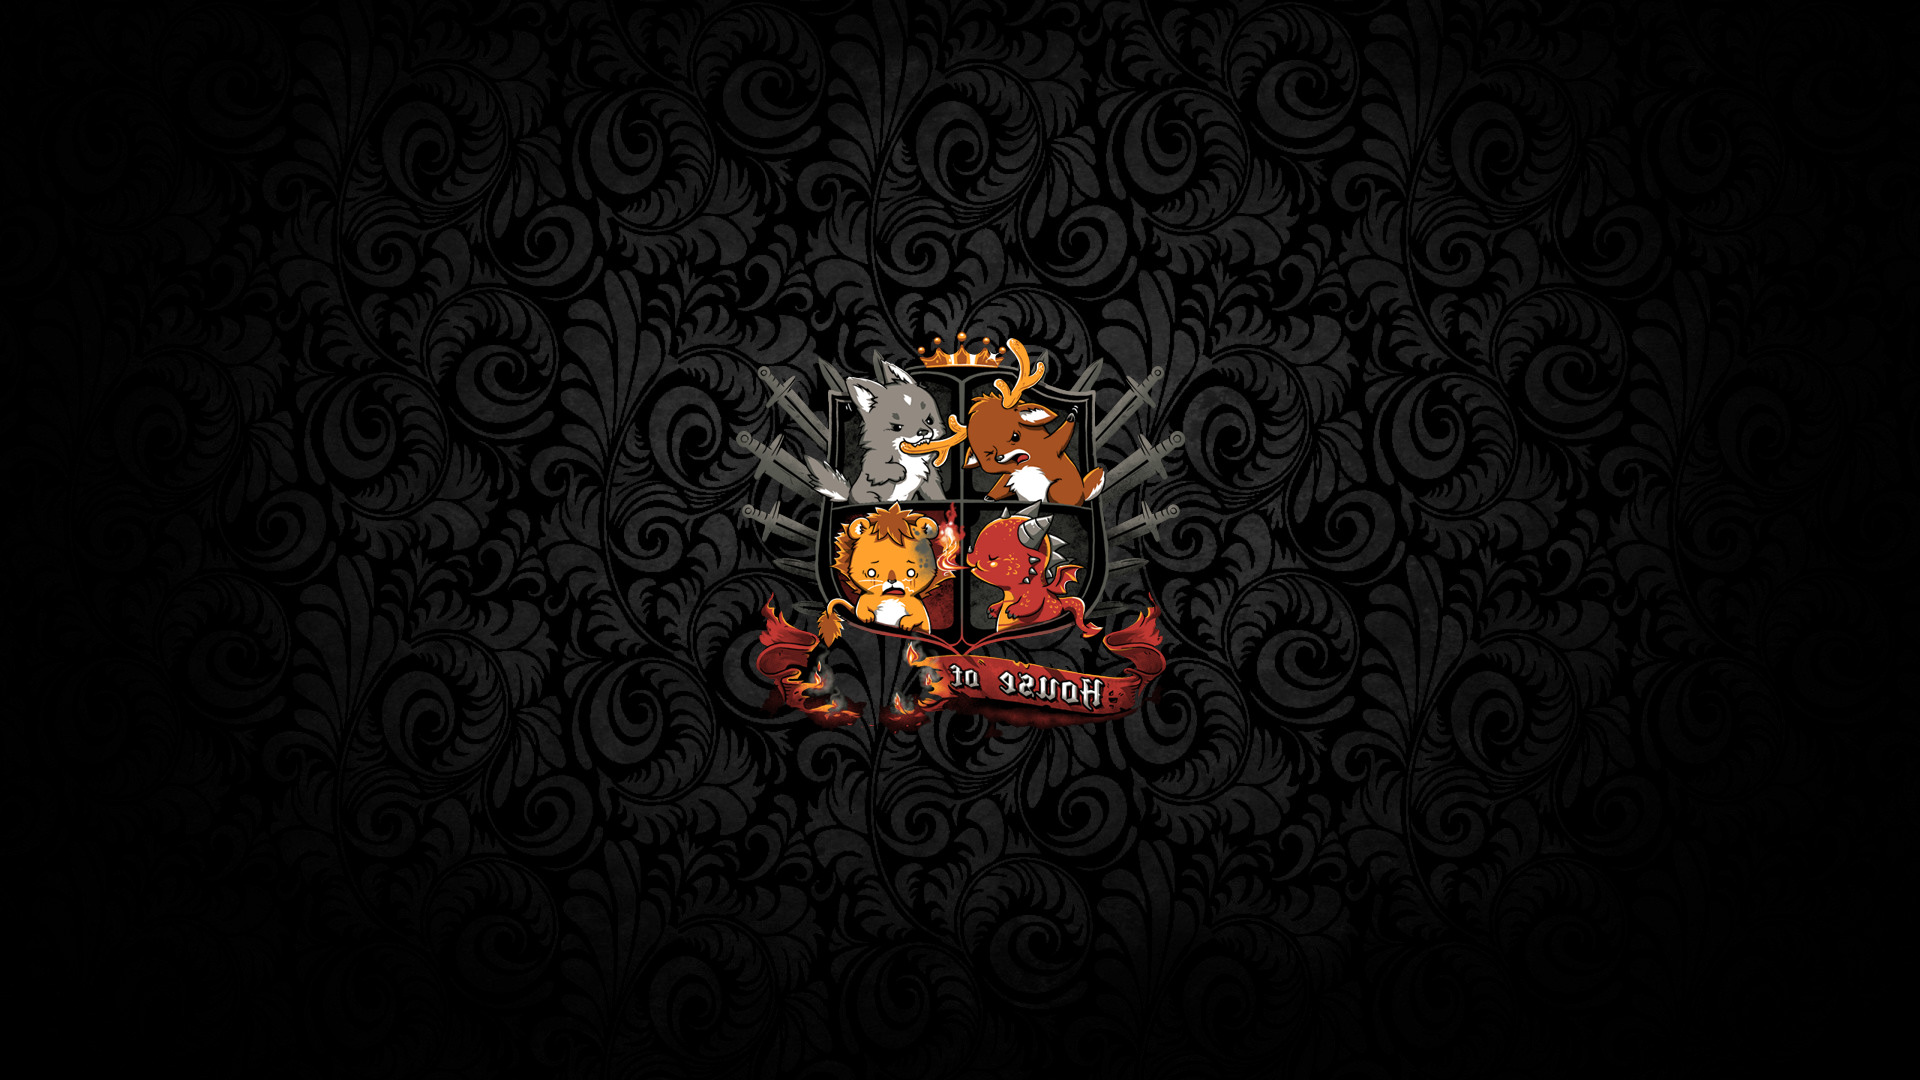 Game Of Thrones Targaryen Wallpaper